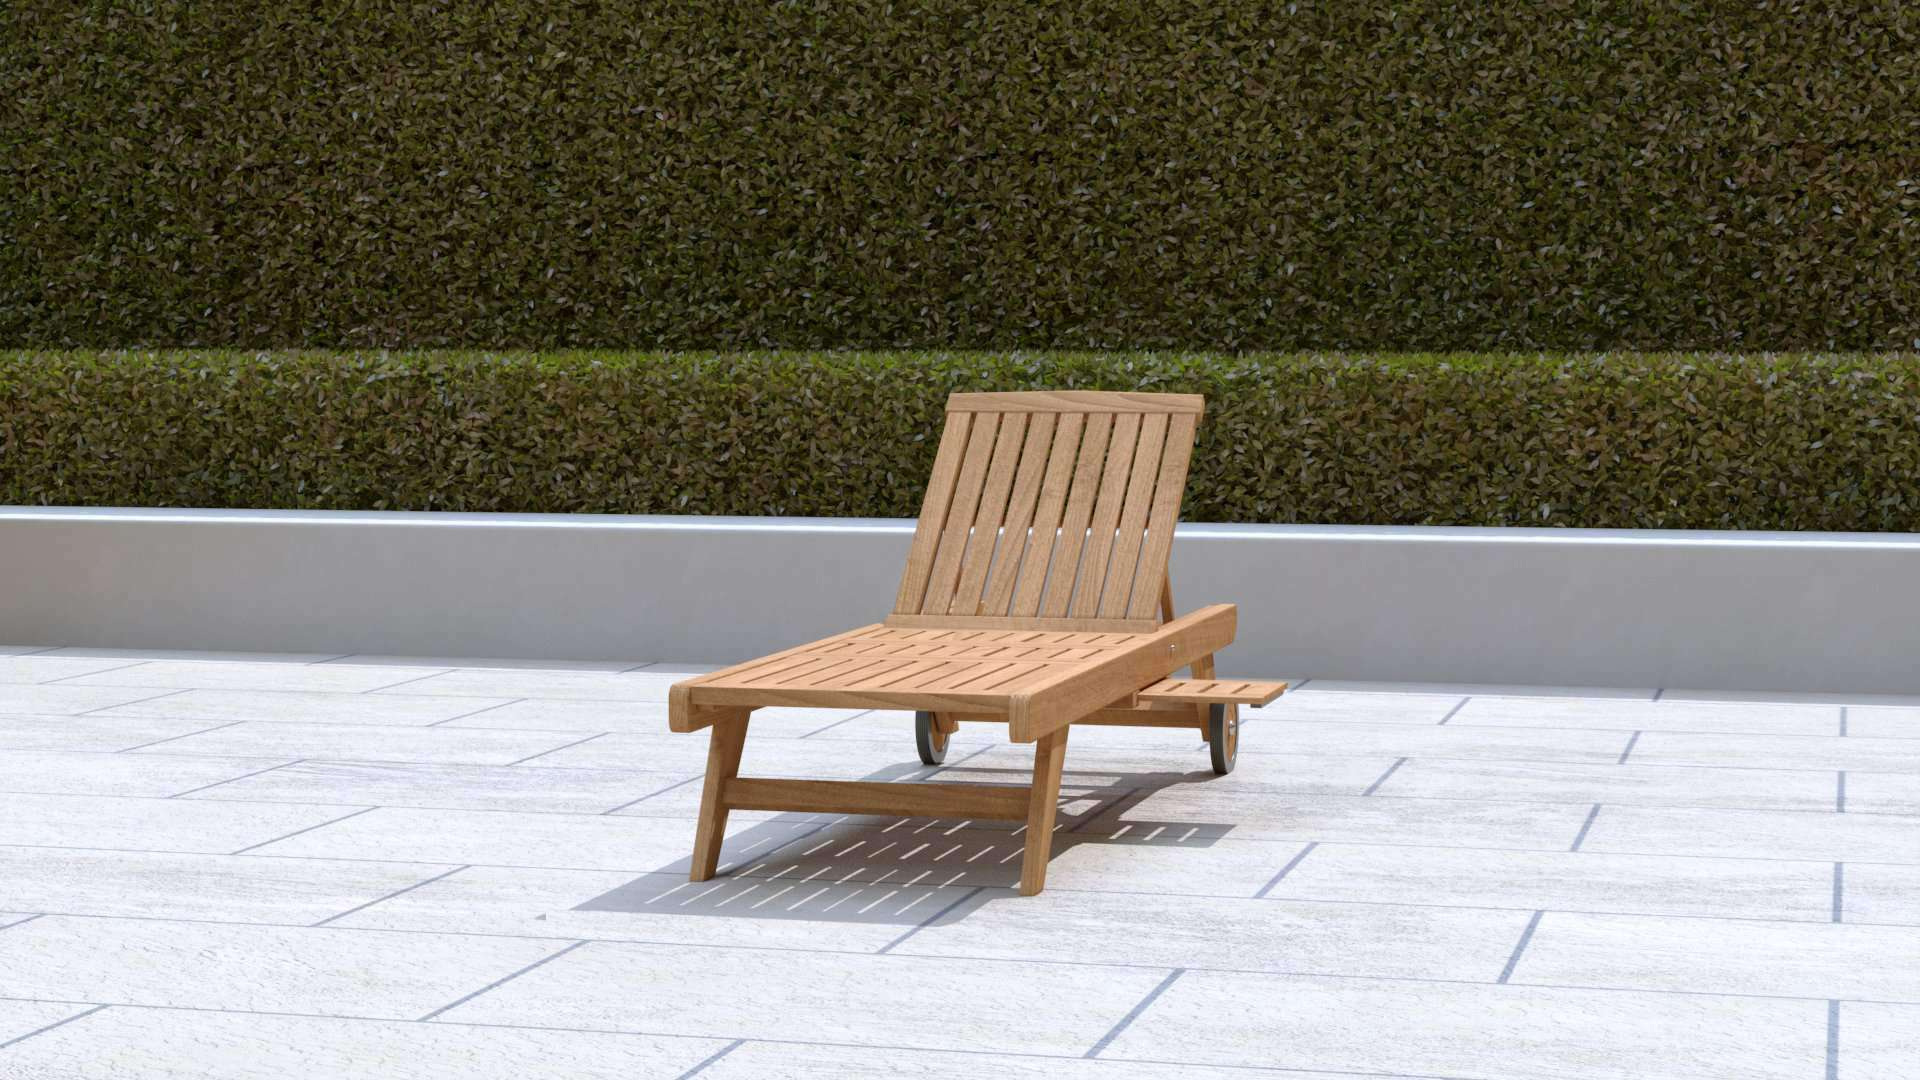 Teak Sun Lounger With Wheels (Blue Cushion)  - Chic Teak® | Luxury Teak Furniture